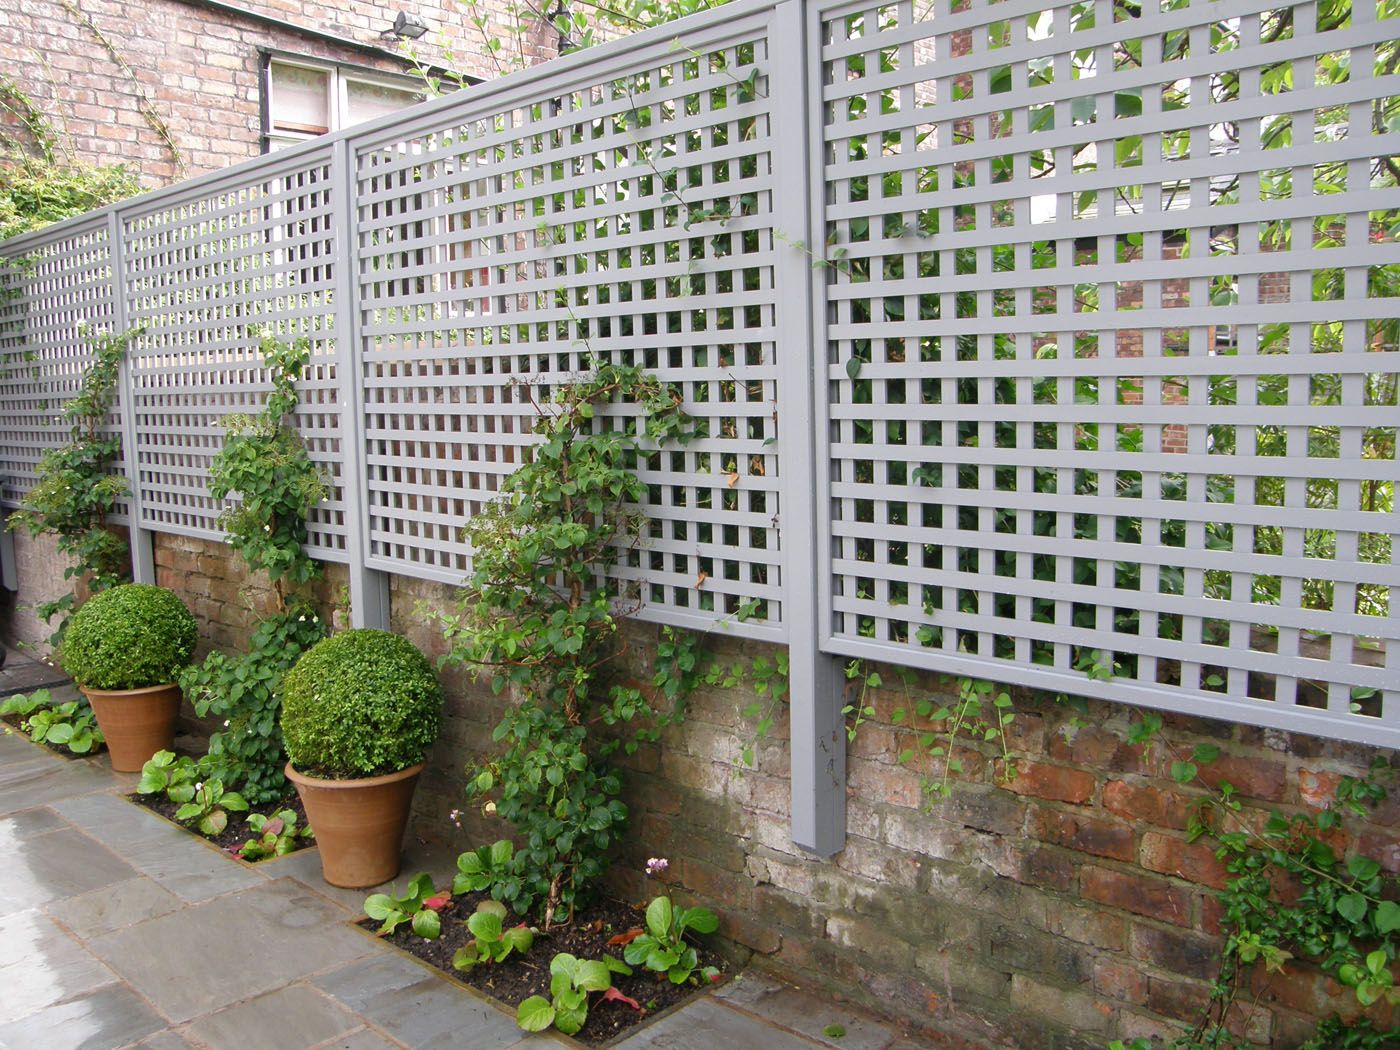 creative uses for garden trellises greenery dwarf and